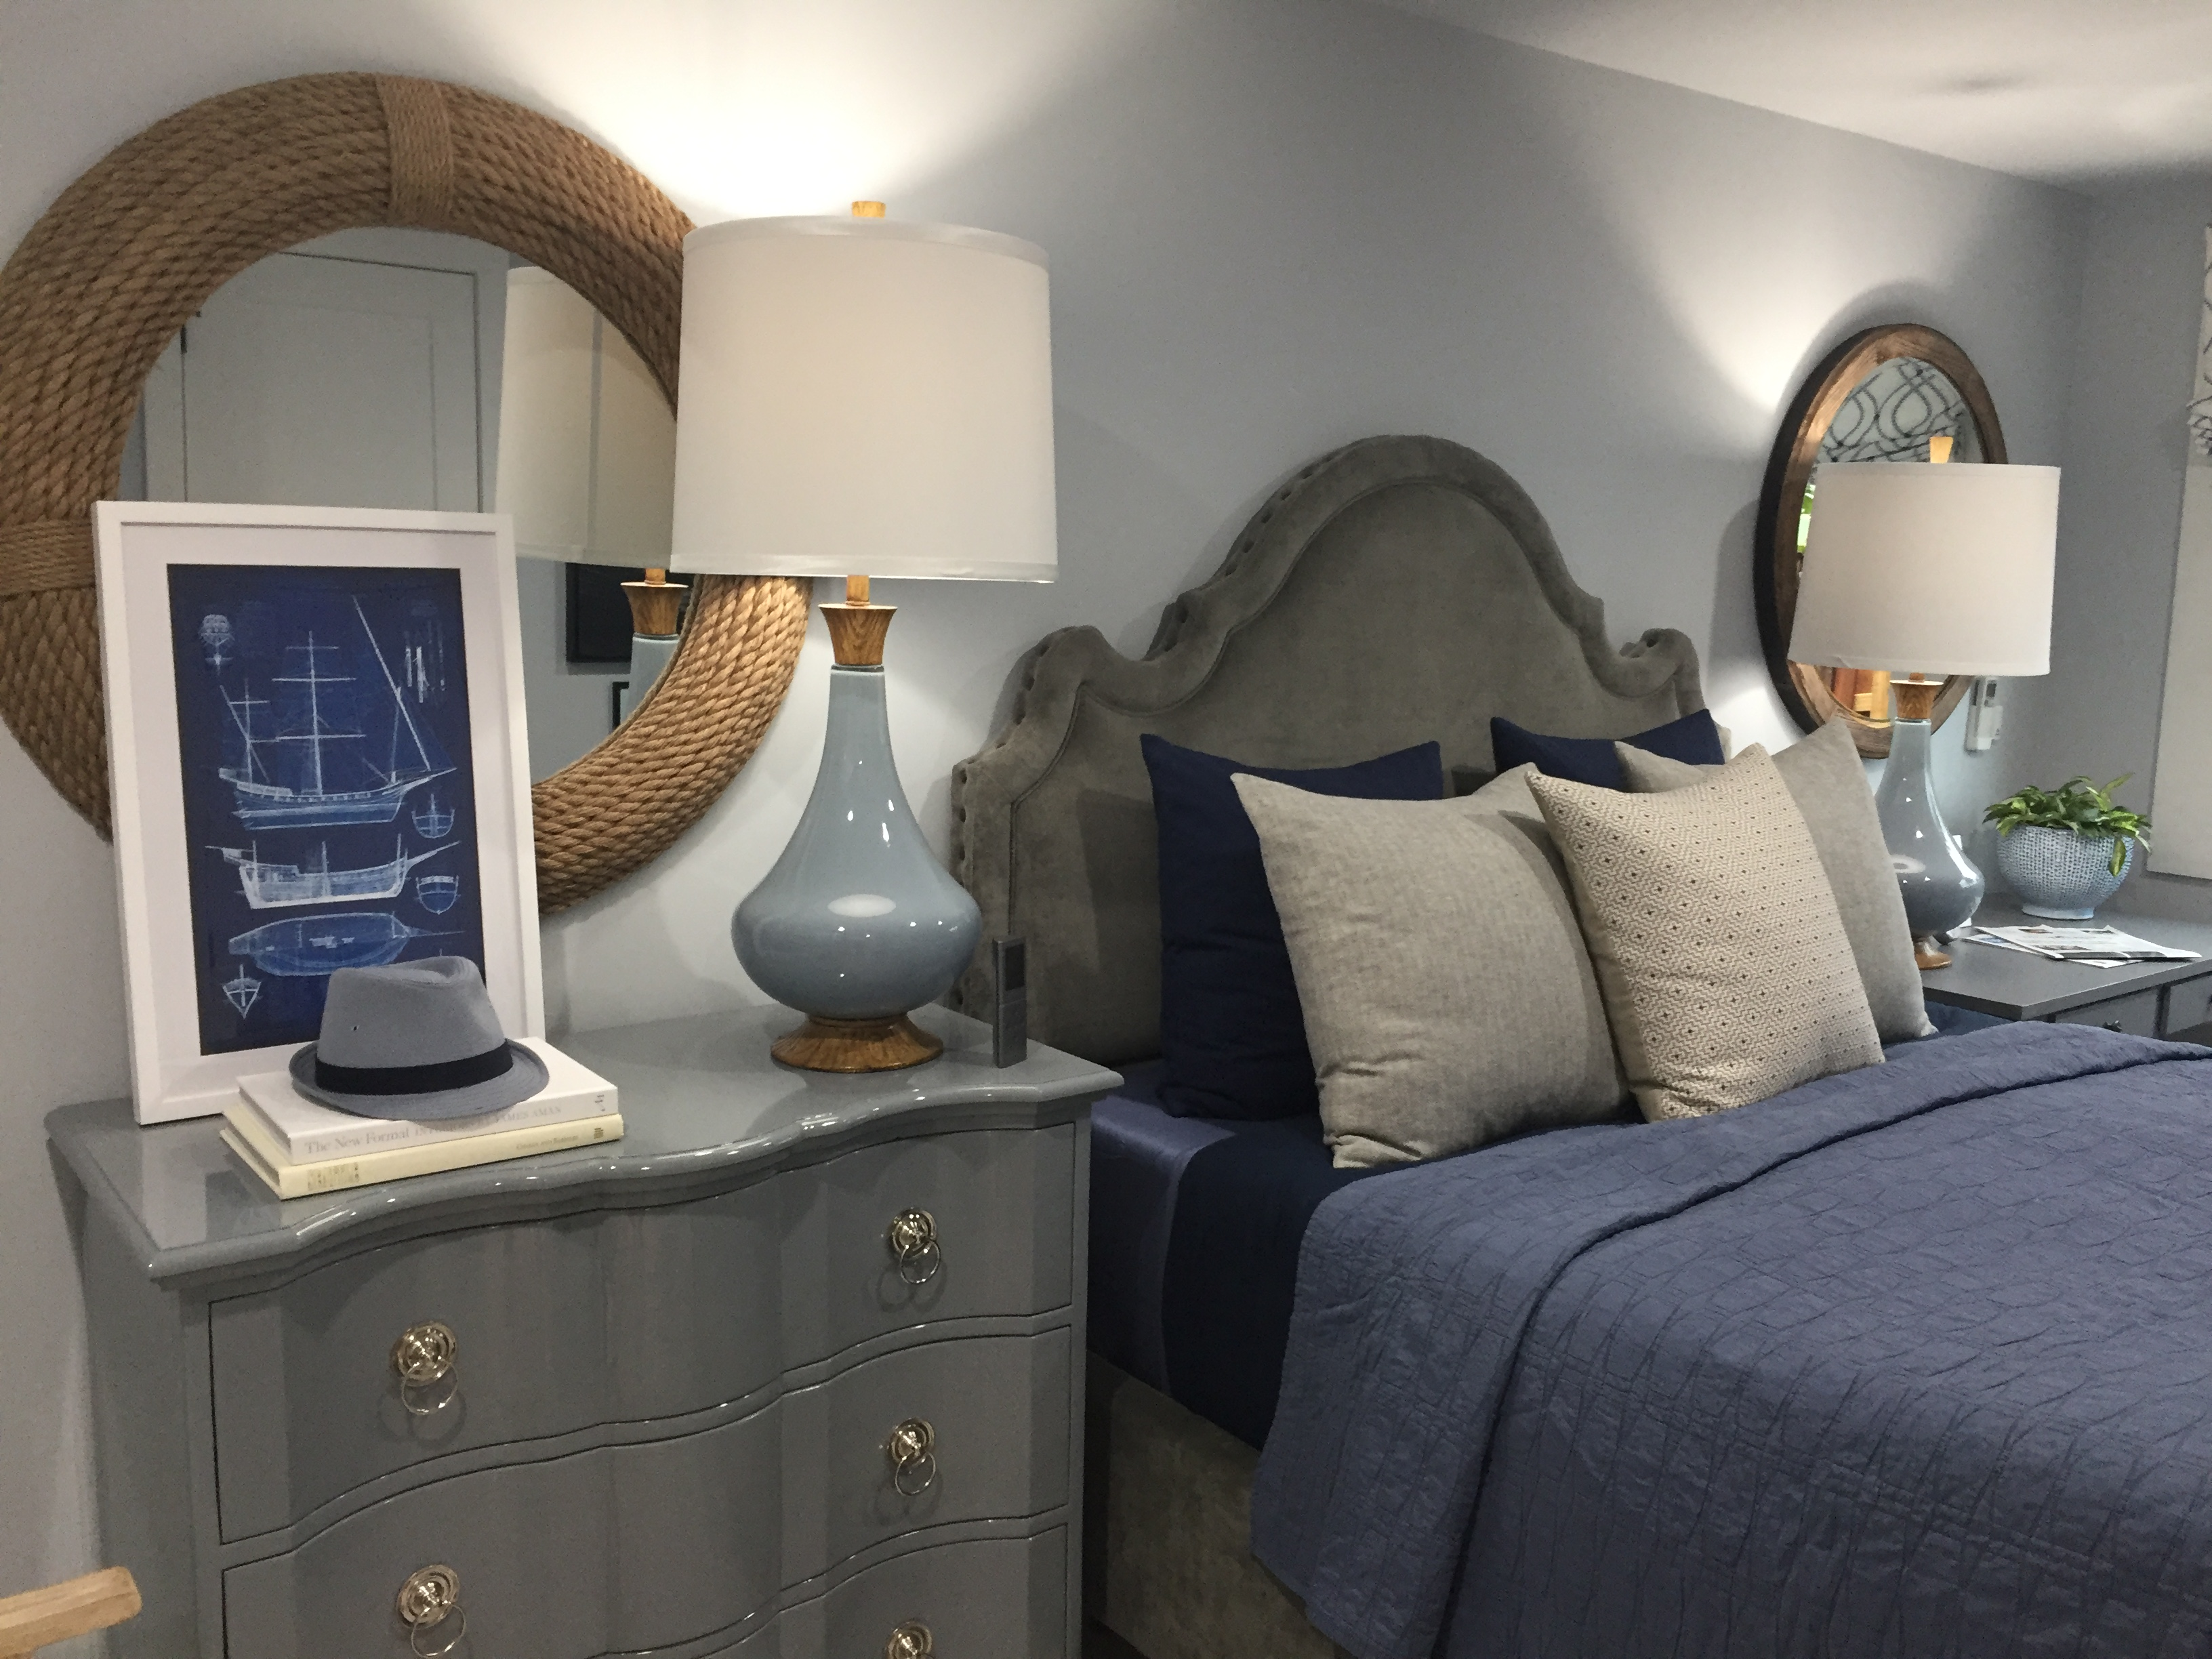 HGTV Dream House Nautical Room